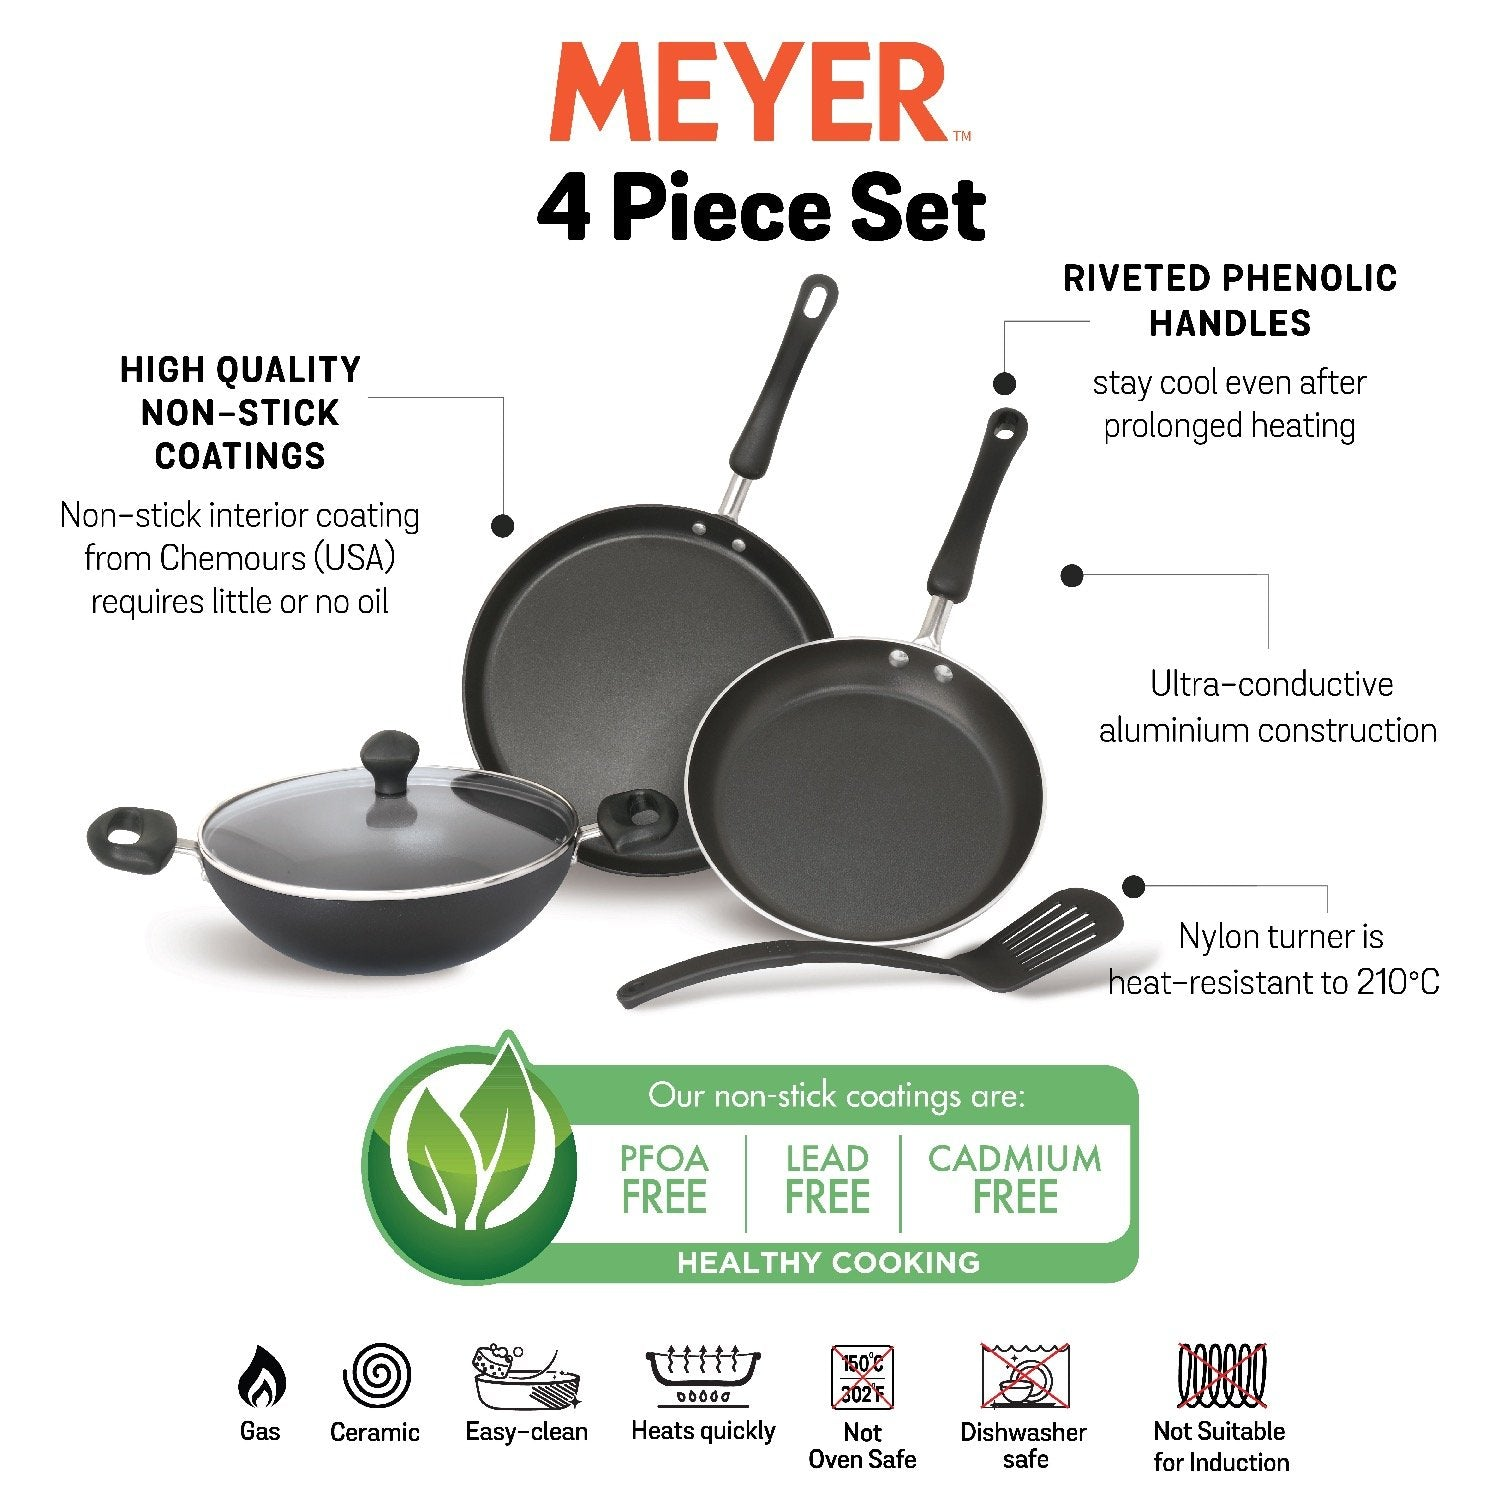 Meyer Non-Stick 5pcs Cookware Set (28cm Flat Dosa Tawa + 24cm Frypan + 24cm Kadai + Nylon Turner) - Pots and Pans